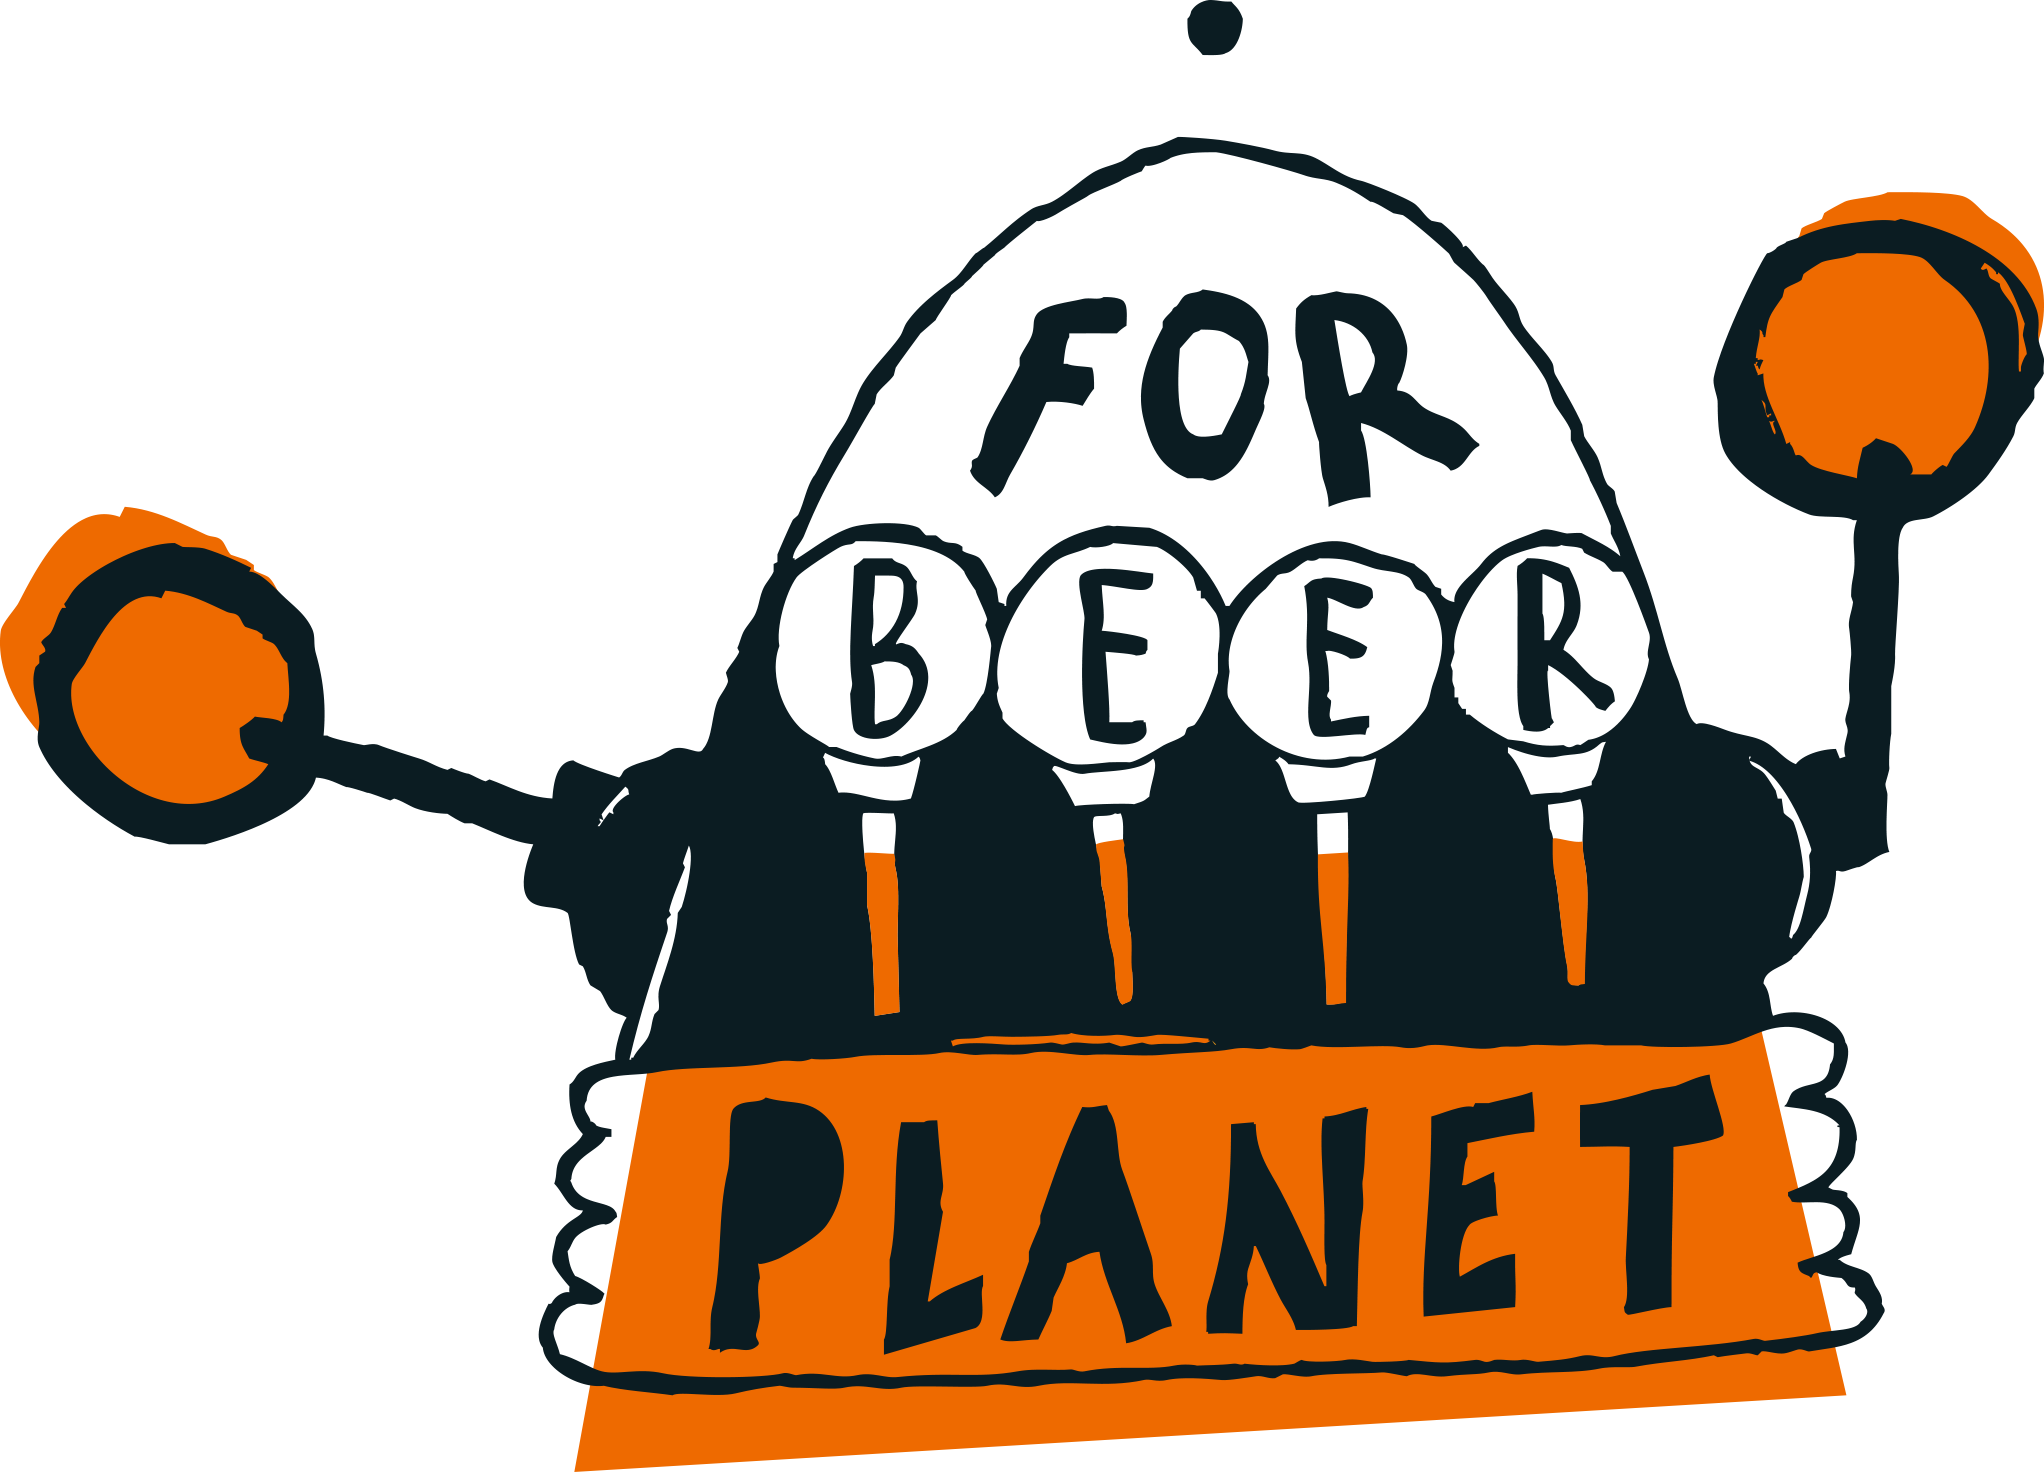 Forbeer Planet - Cervezas craft /// Bar /// Tienda /// Catas